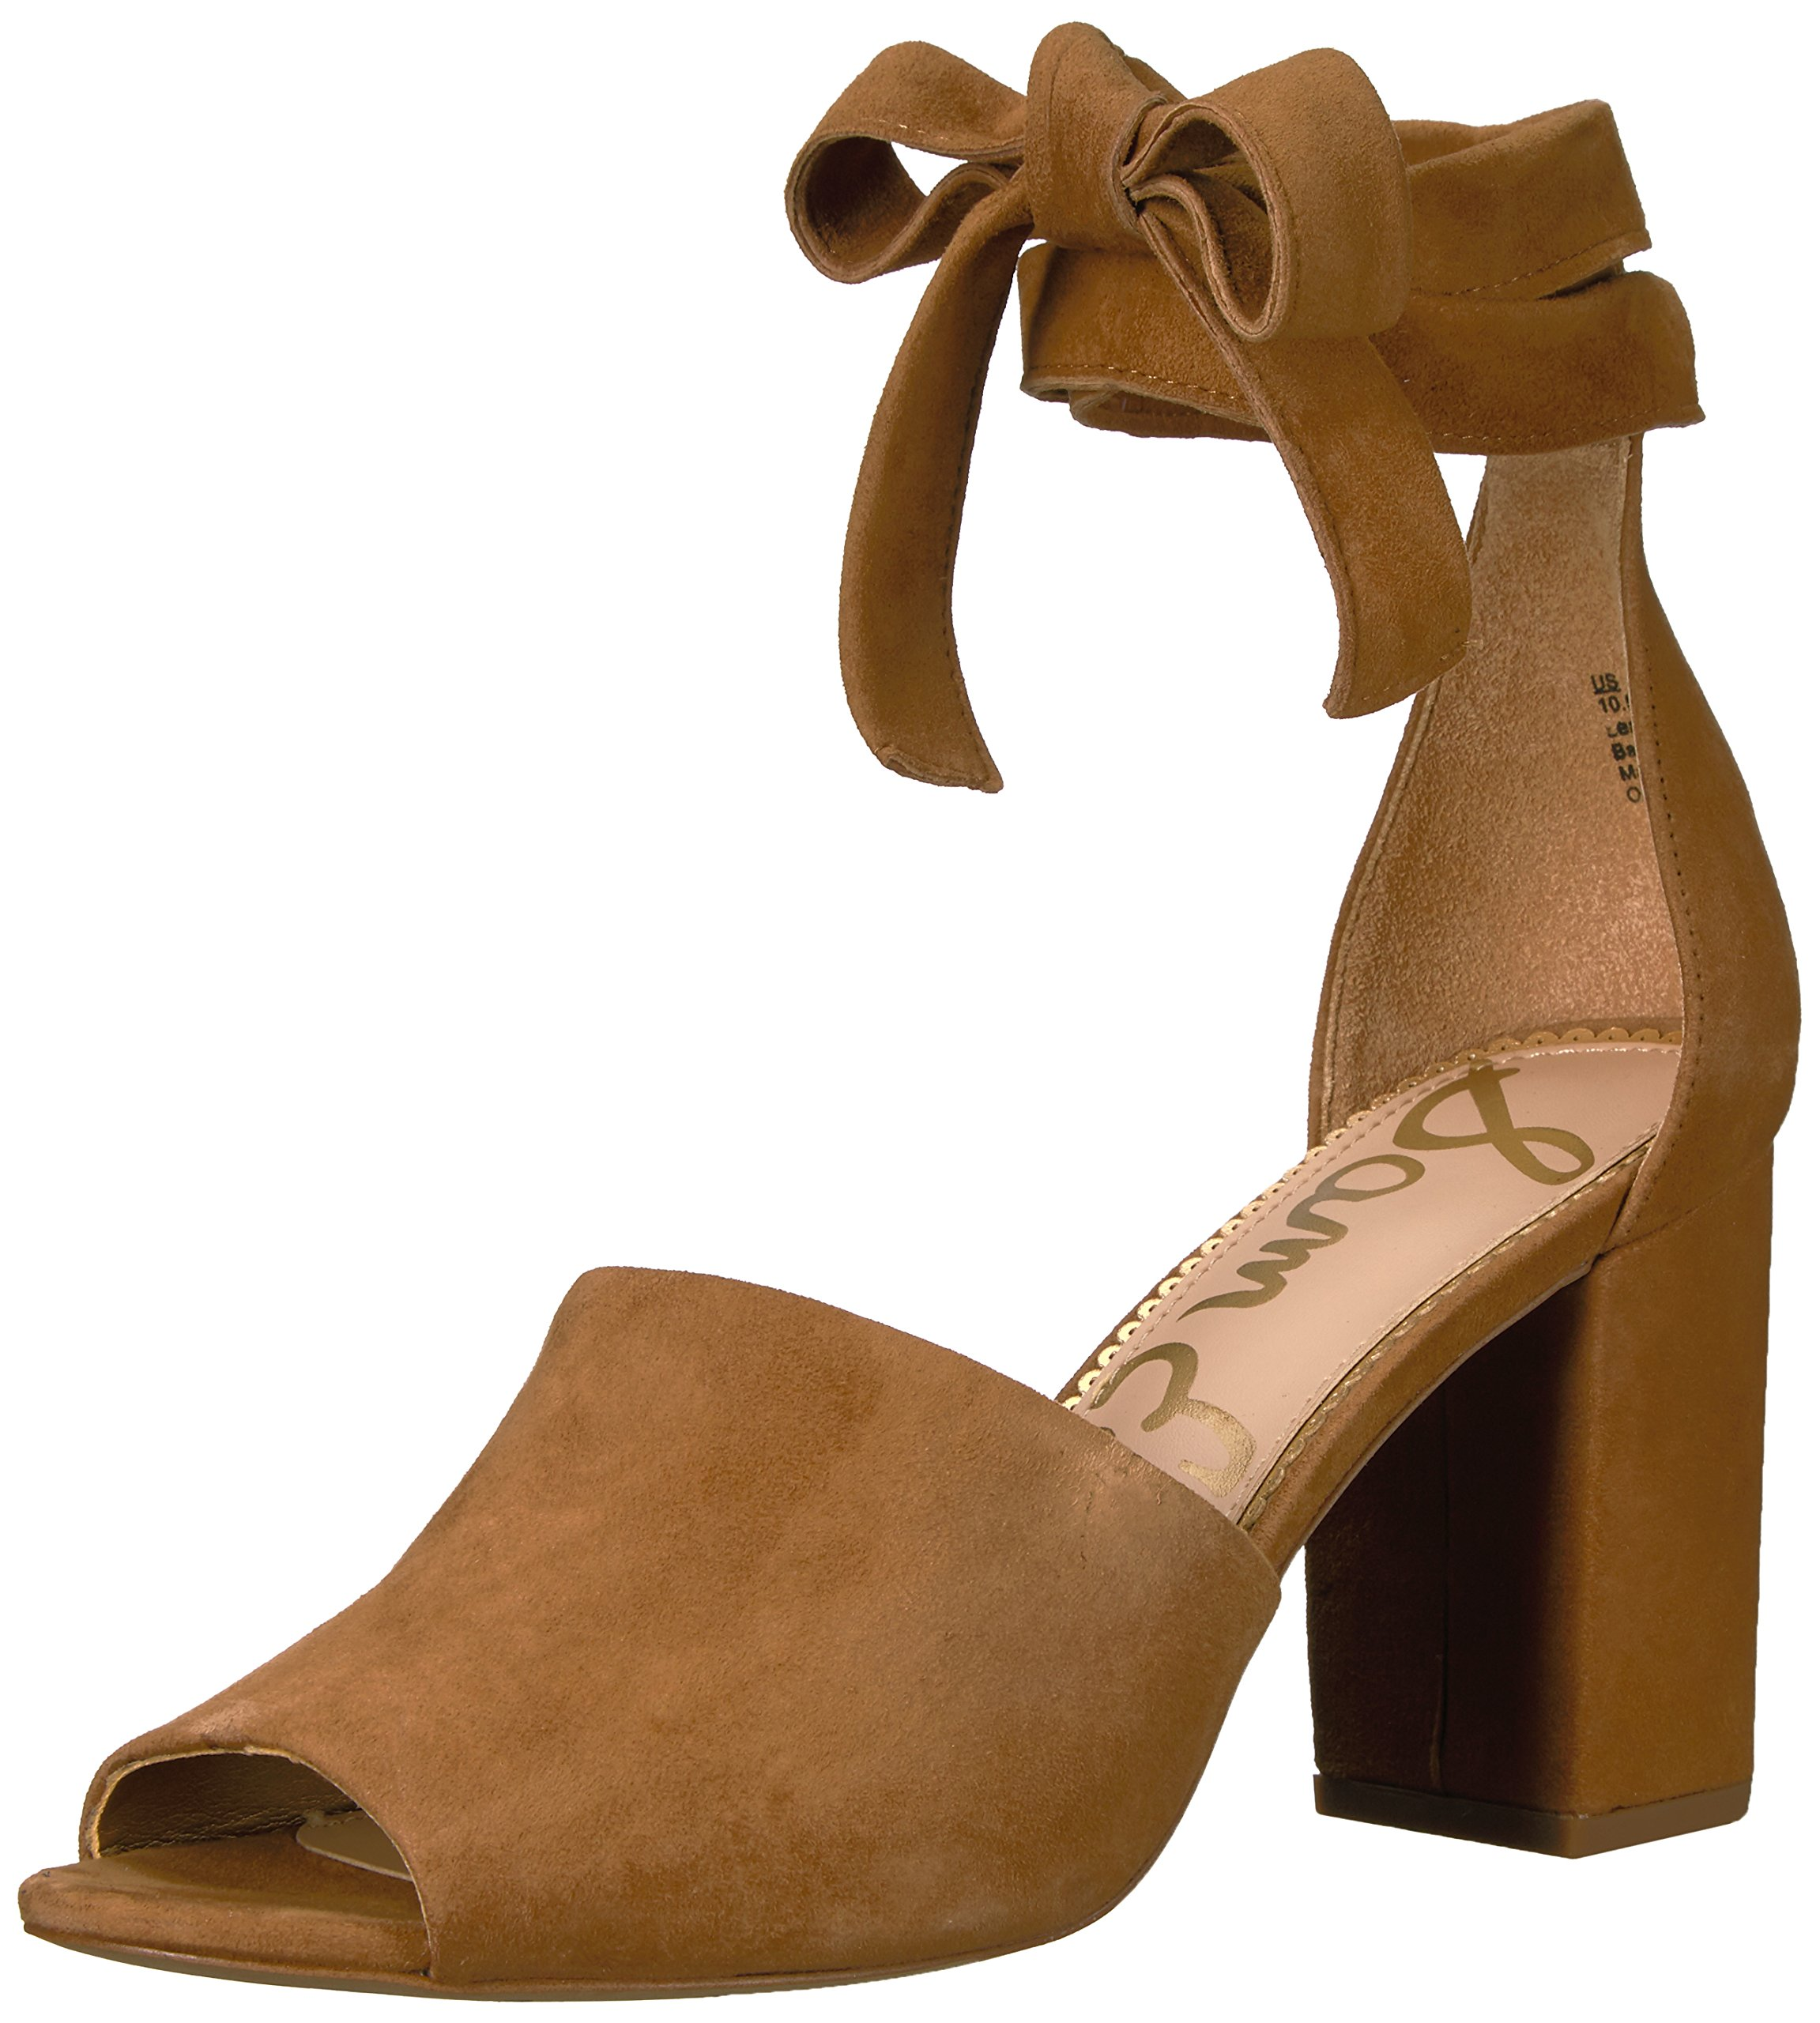 Sam Edelman Women's Odele Heeled Sandal, Golden Caramel Suede, 6.5 Medium US